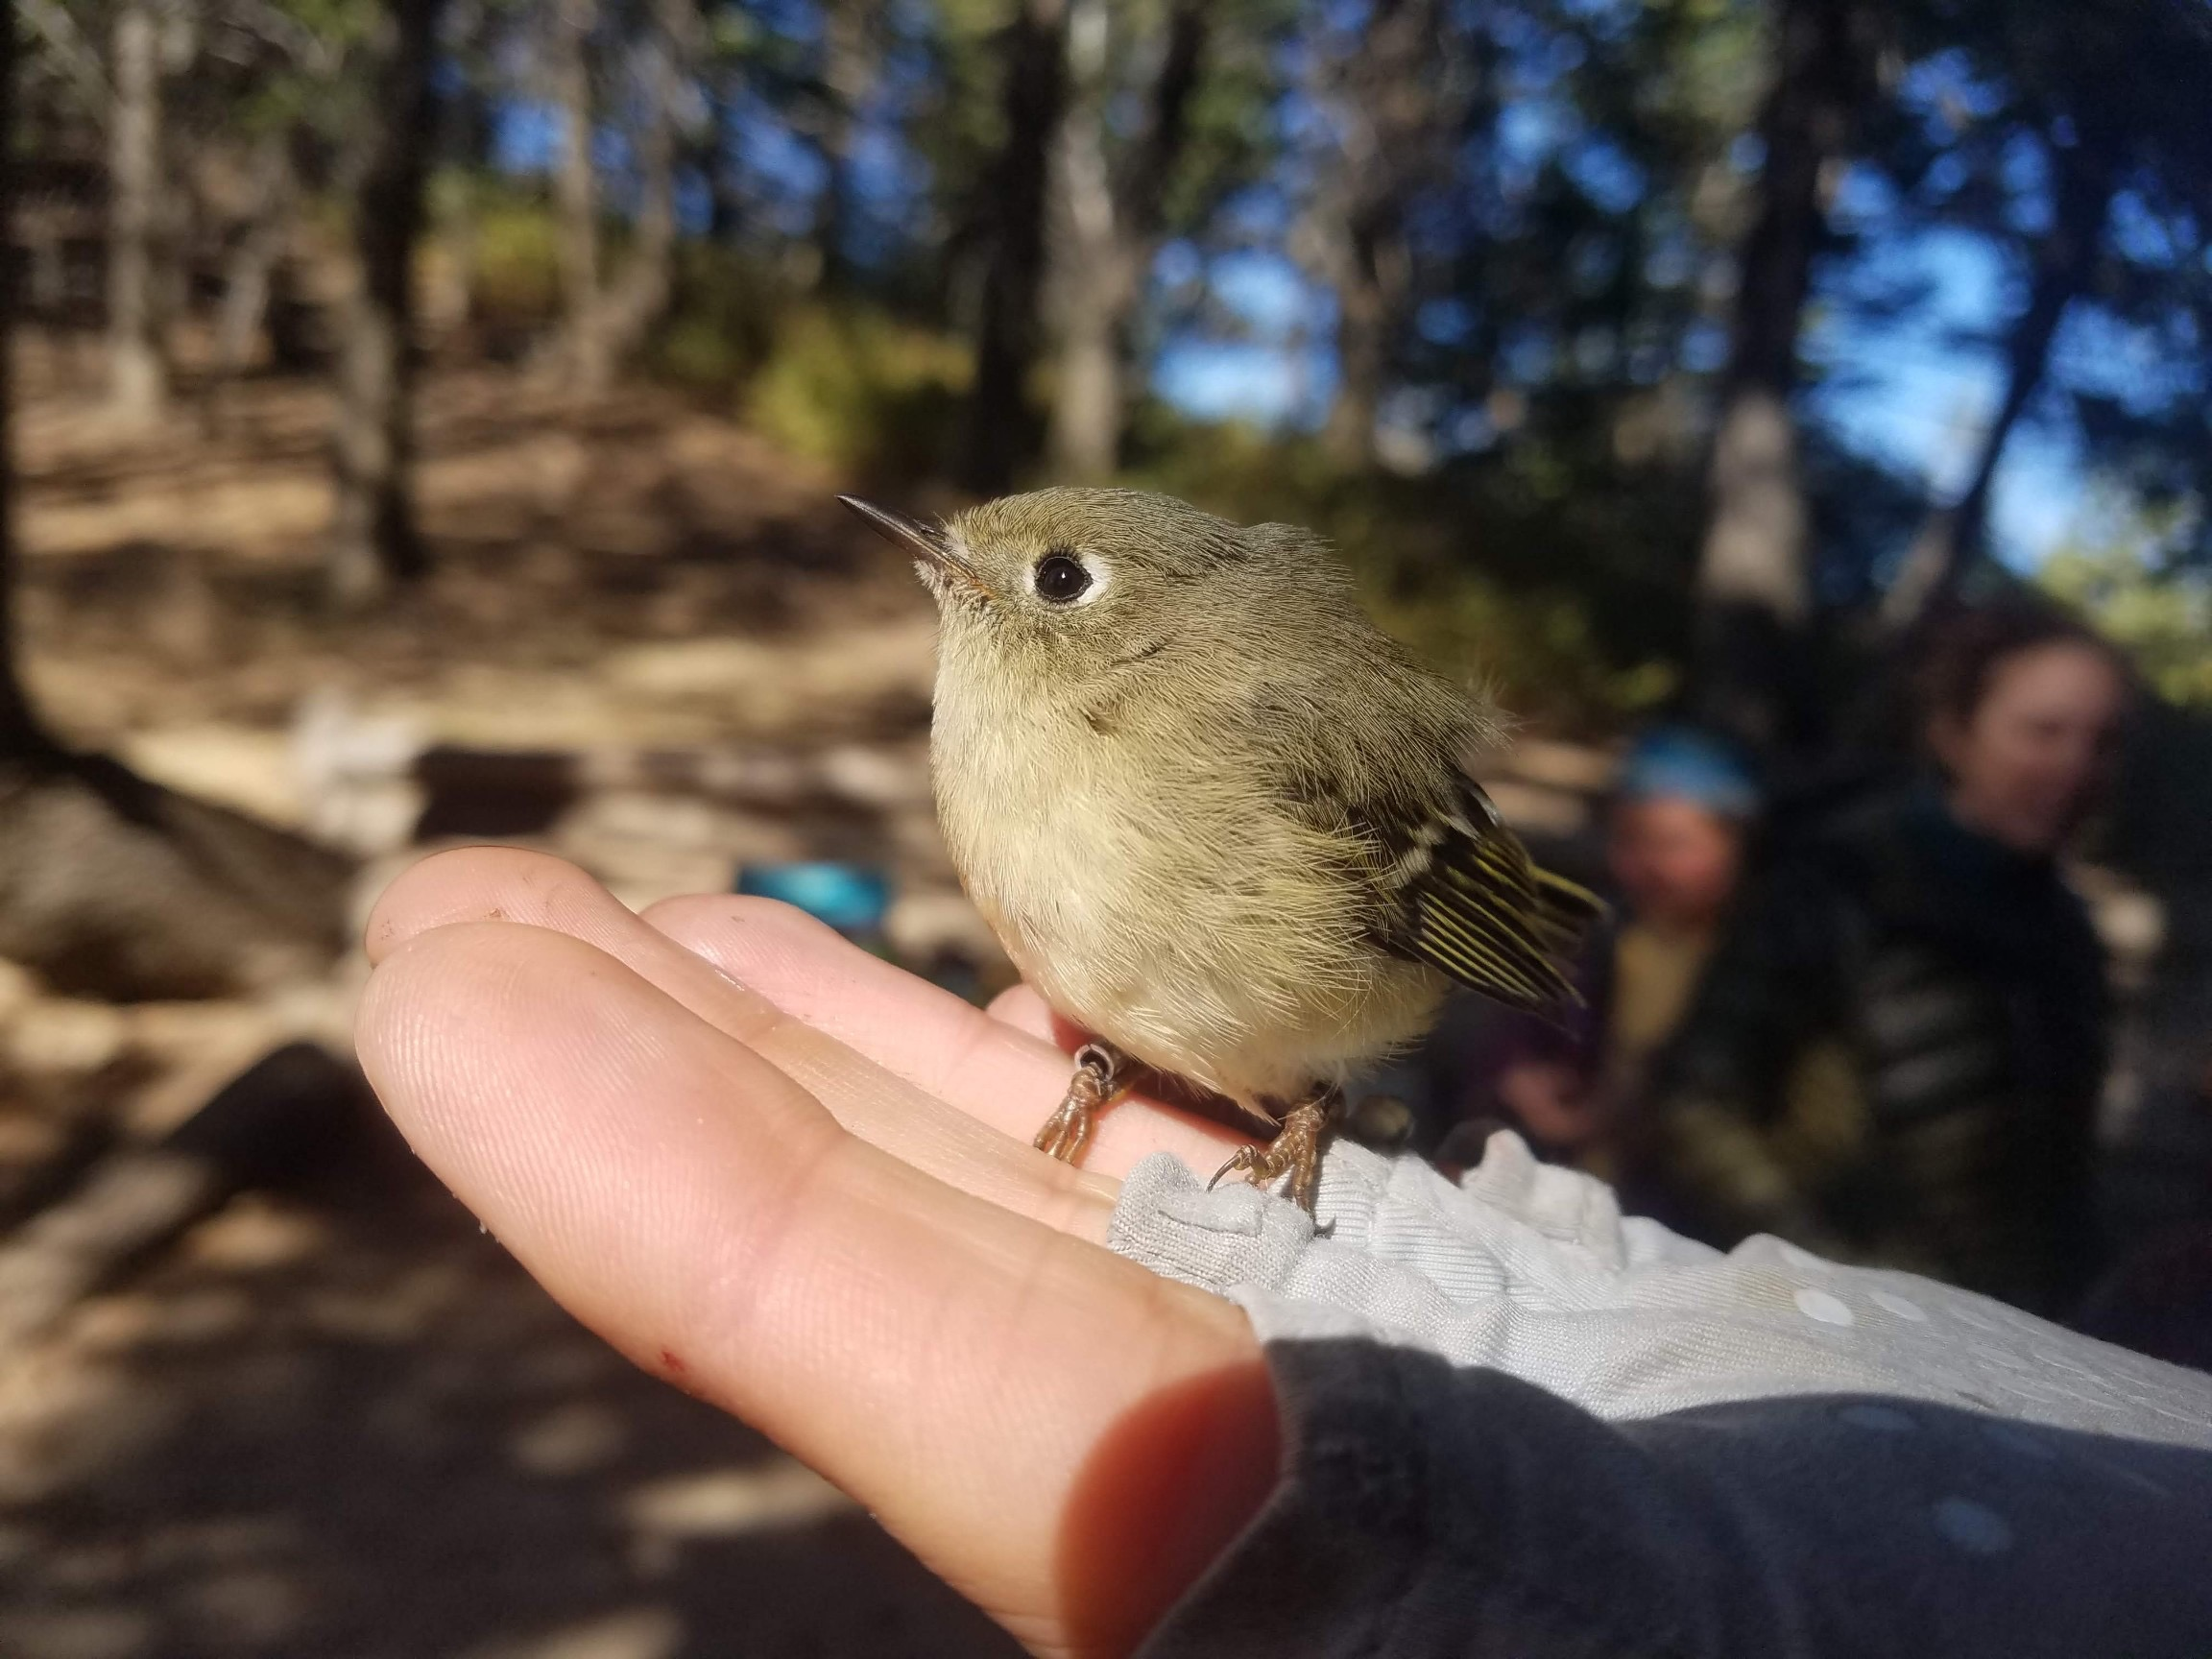 a small greenish bird sits perched in the open palm of a biologist